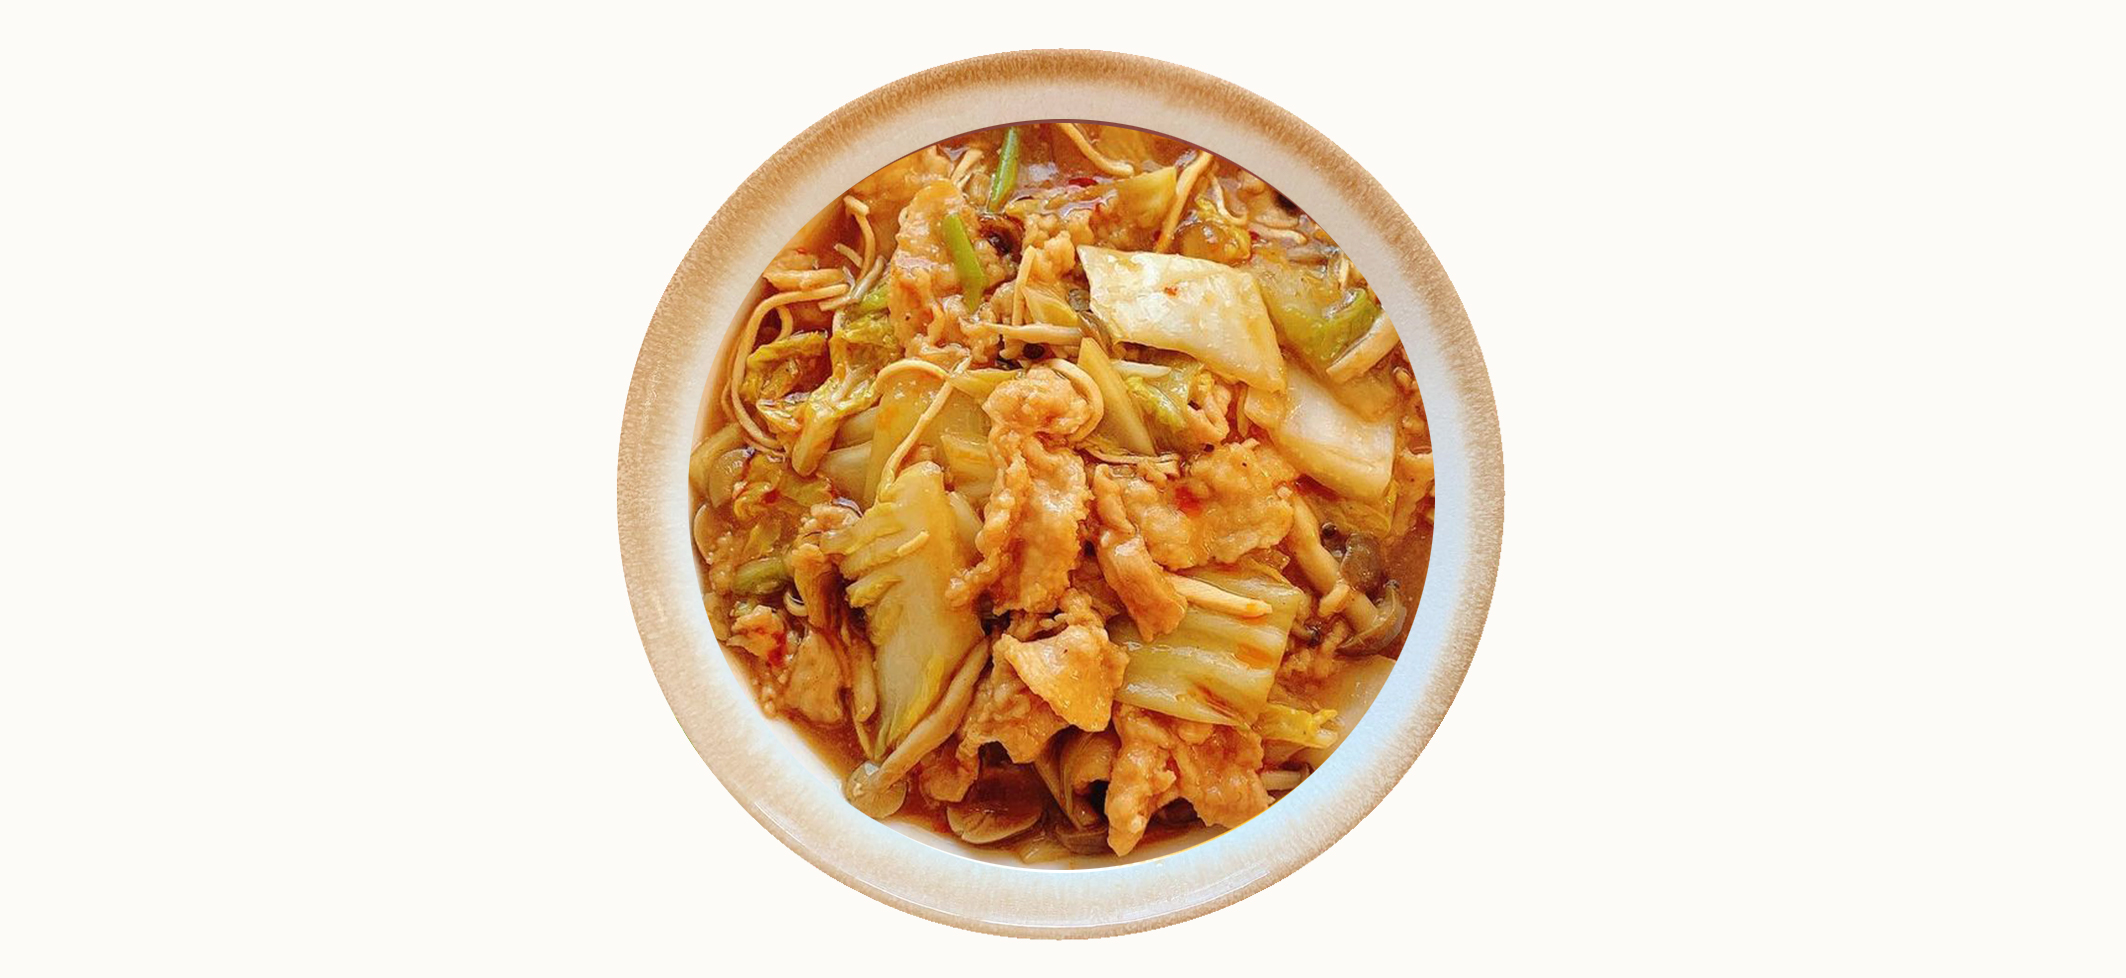 Sauteed pork and Chinese cabbage with black vinegar and colorful vegetables「豚肉�白��黒酢炒�彩り野�を添���